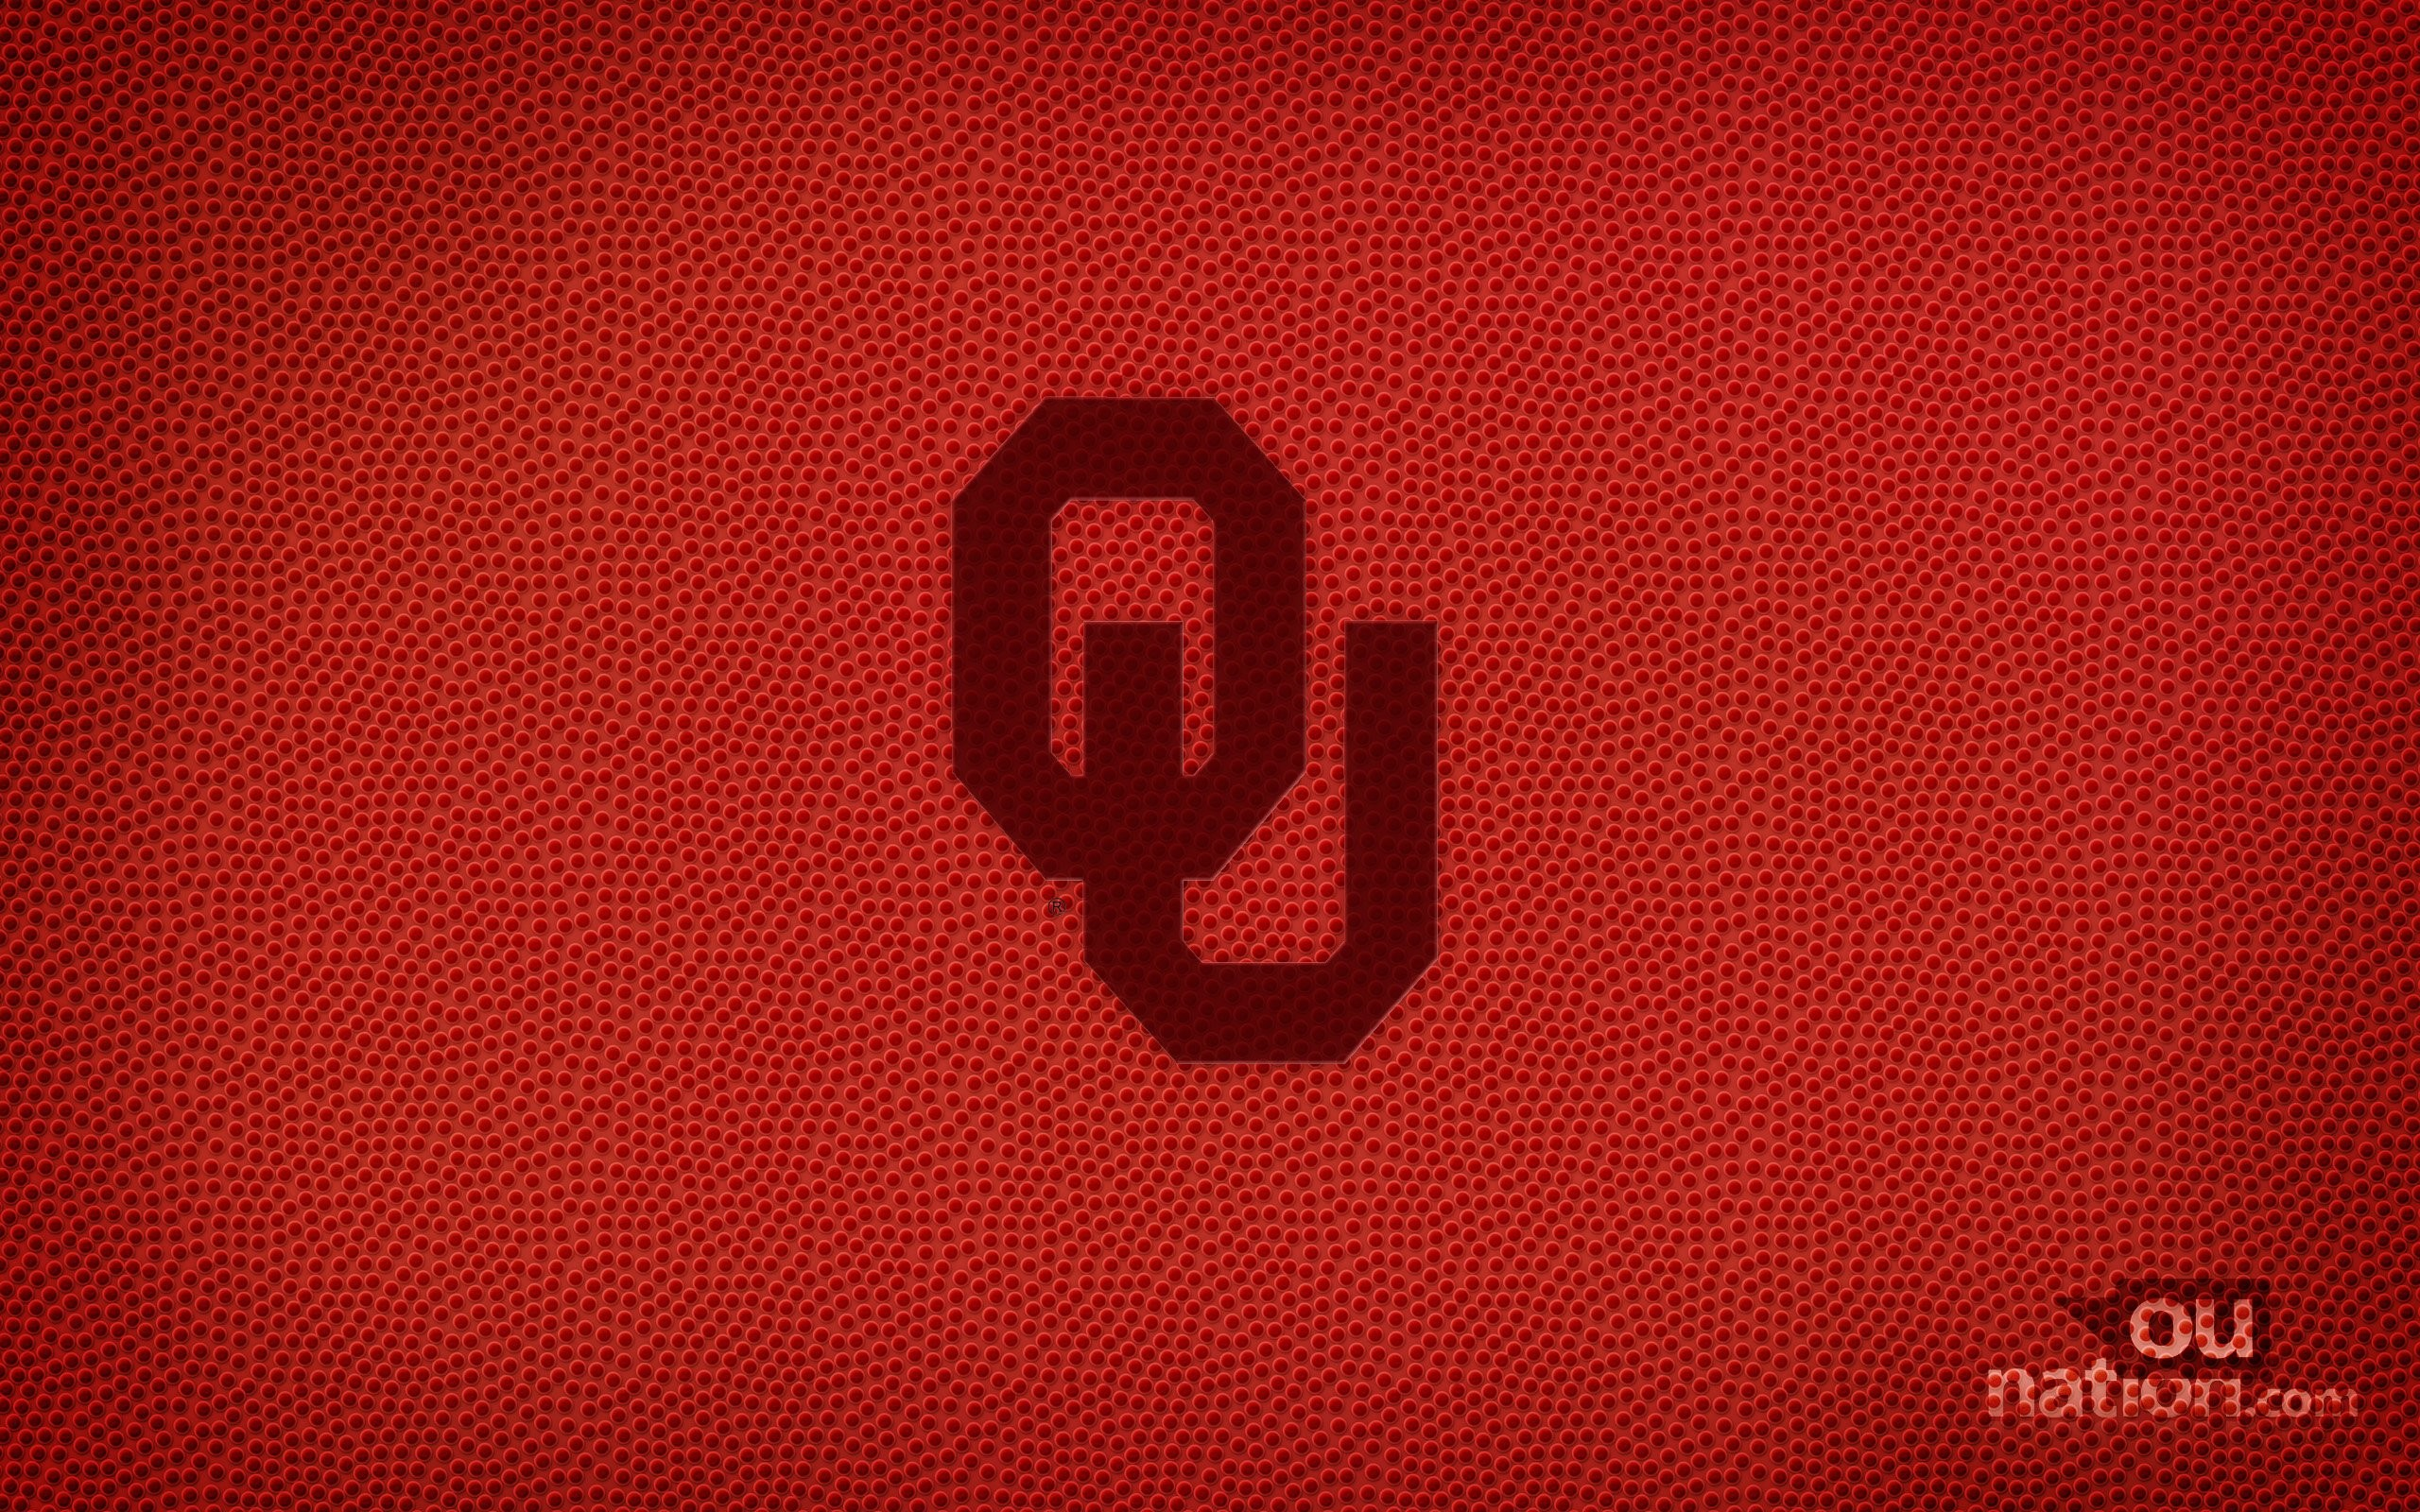 Res: 2560x1600, OKLAHOMA SOONERS college football wallpaper |  | 594076 |  WallpaperUP